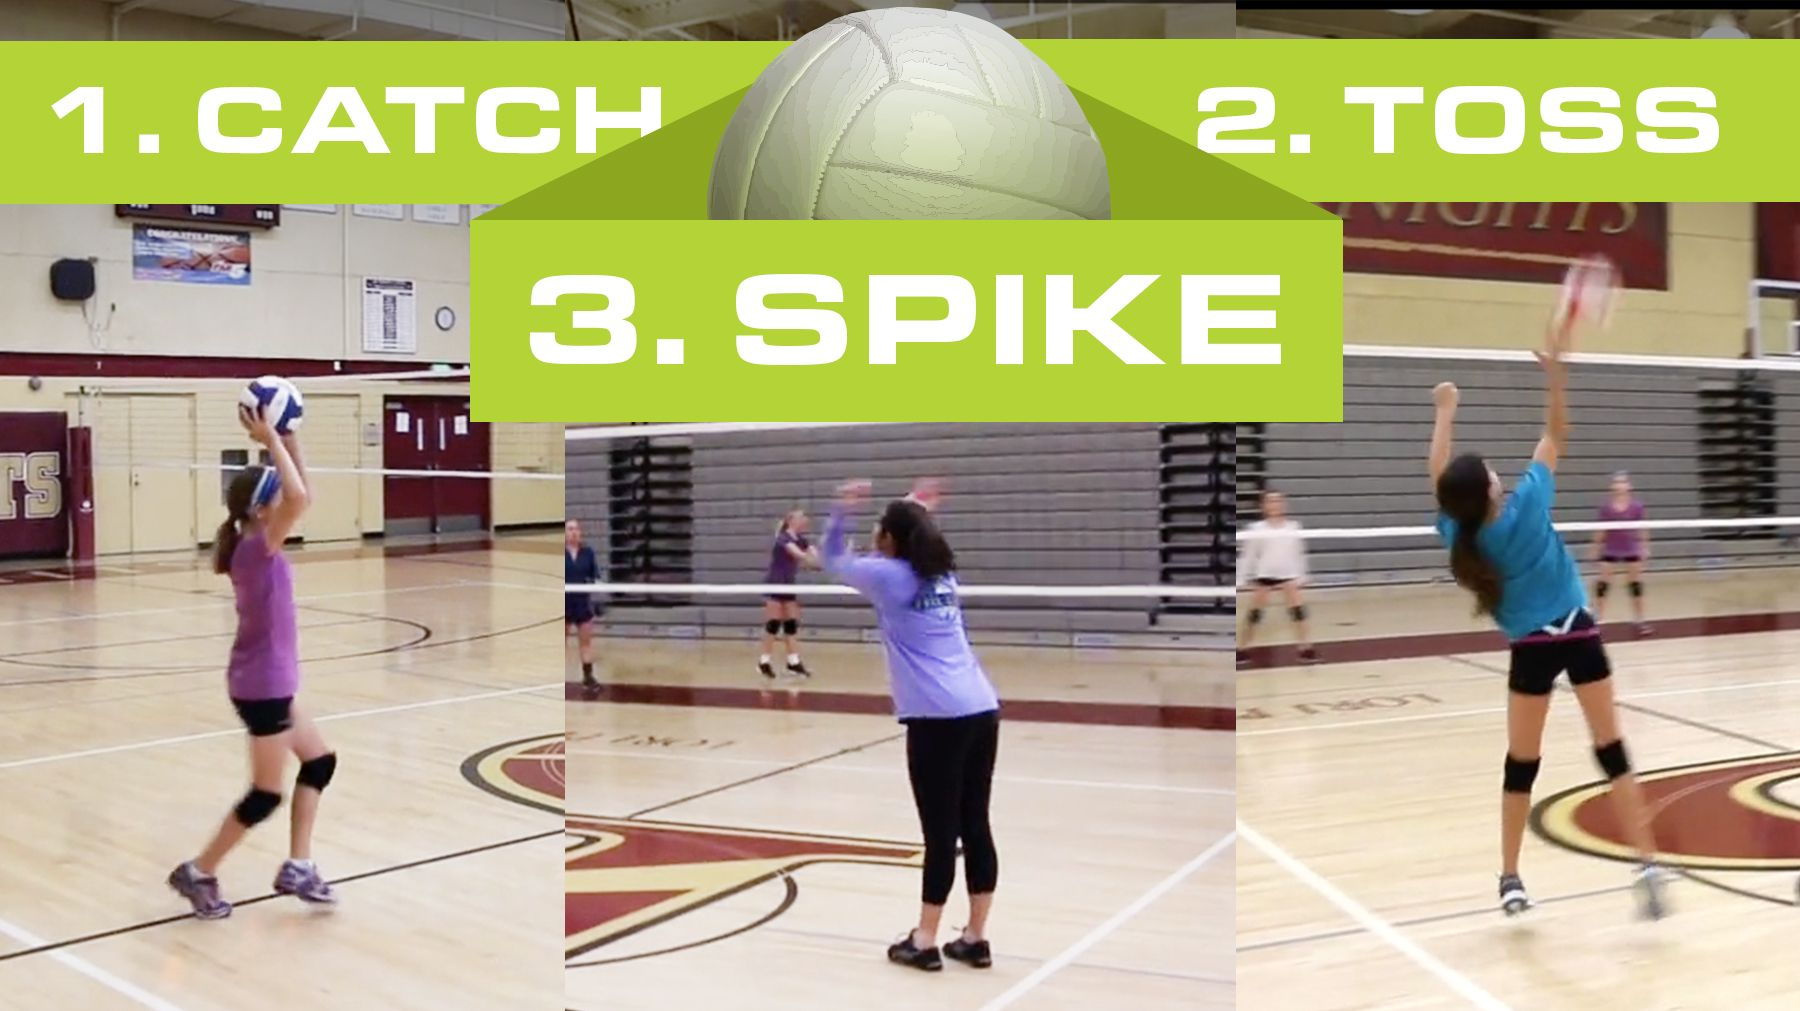 Catch Toss Spike Game For Beginners The Art Of Coaching Volleyball Volleyball Drills For Beginners Coaching Volleyball Volleyball Drills